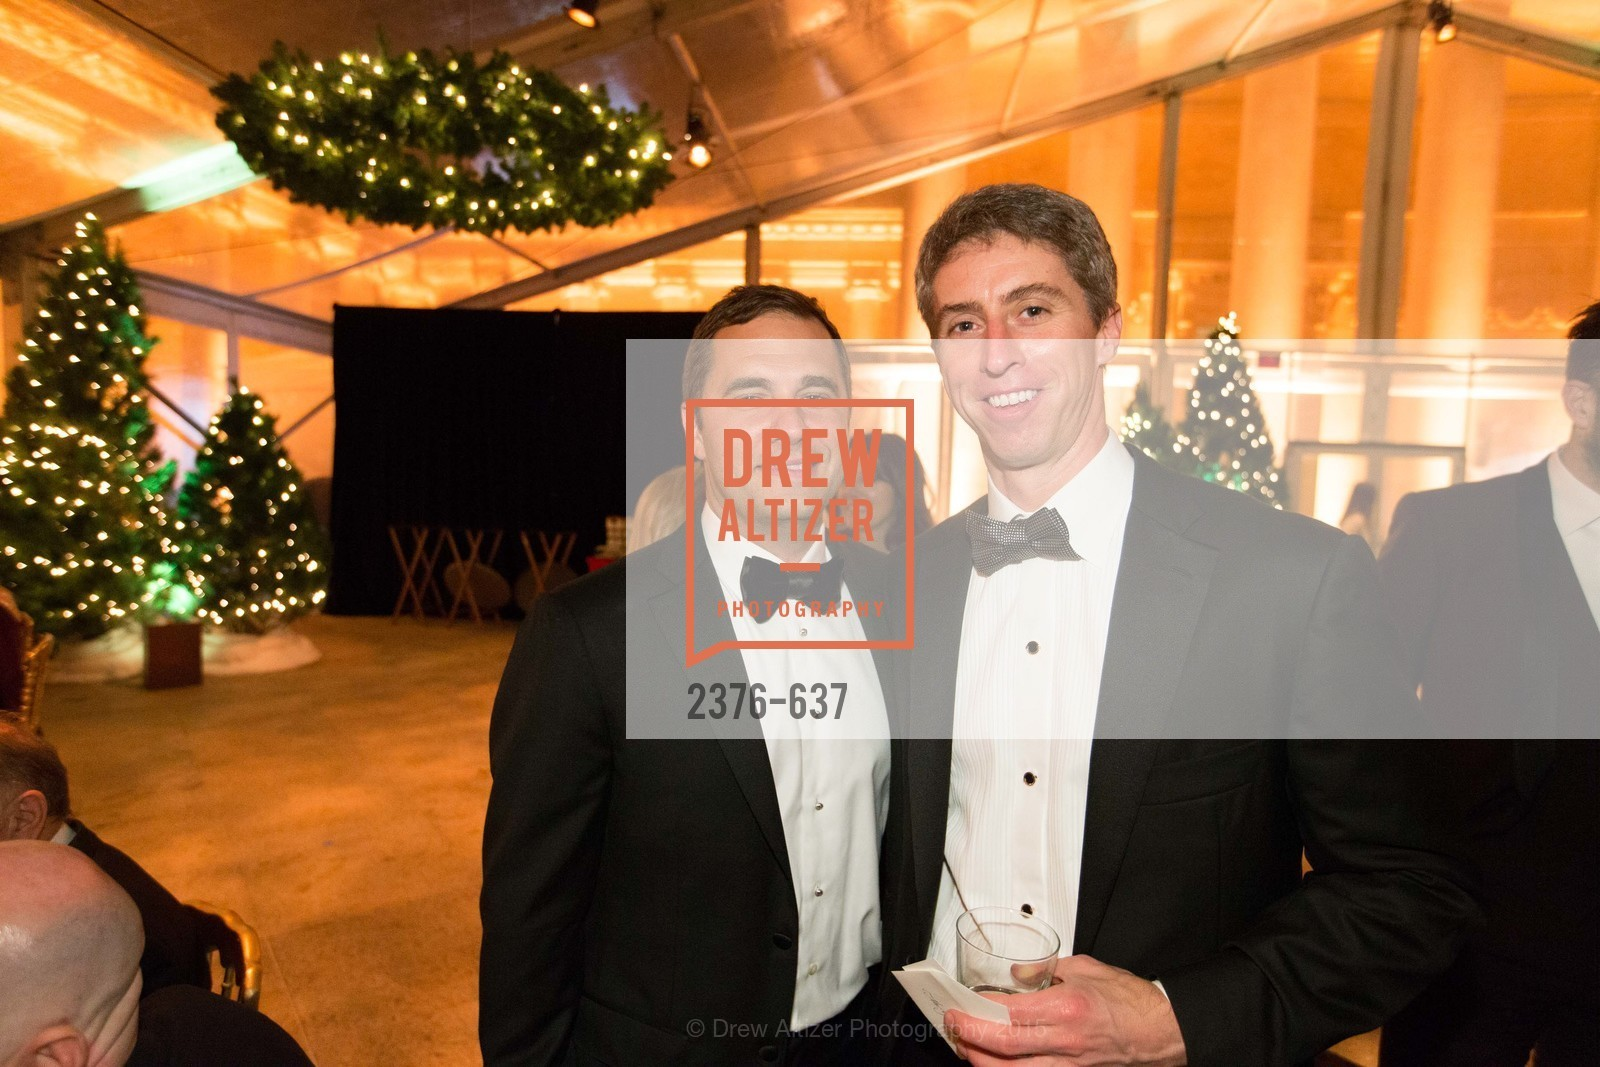 Drew Mcknight, Brian Grossman, AN ELEGANT EVENING Presented by the Fine Arts Museums of San Francisco, Legion of Honor, Court of Honor. 100 34th Ave, December 8th, 2015,Drew Altizer, Drew Altizer Photography, full-service agency, private events, San Francisco photographer, photographer california